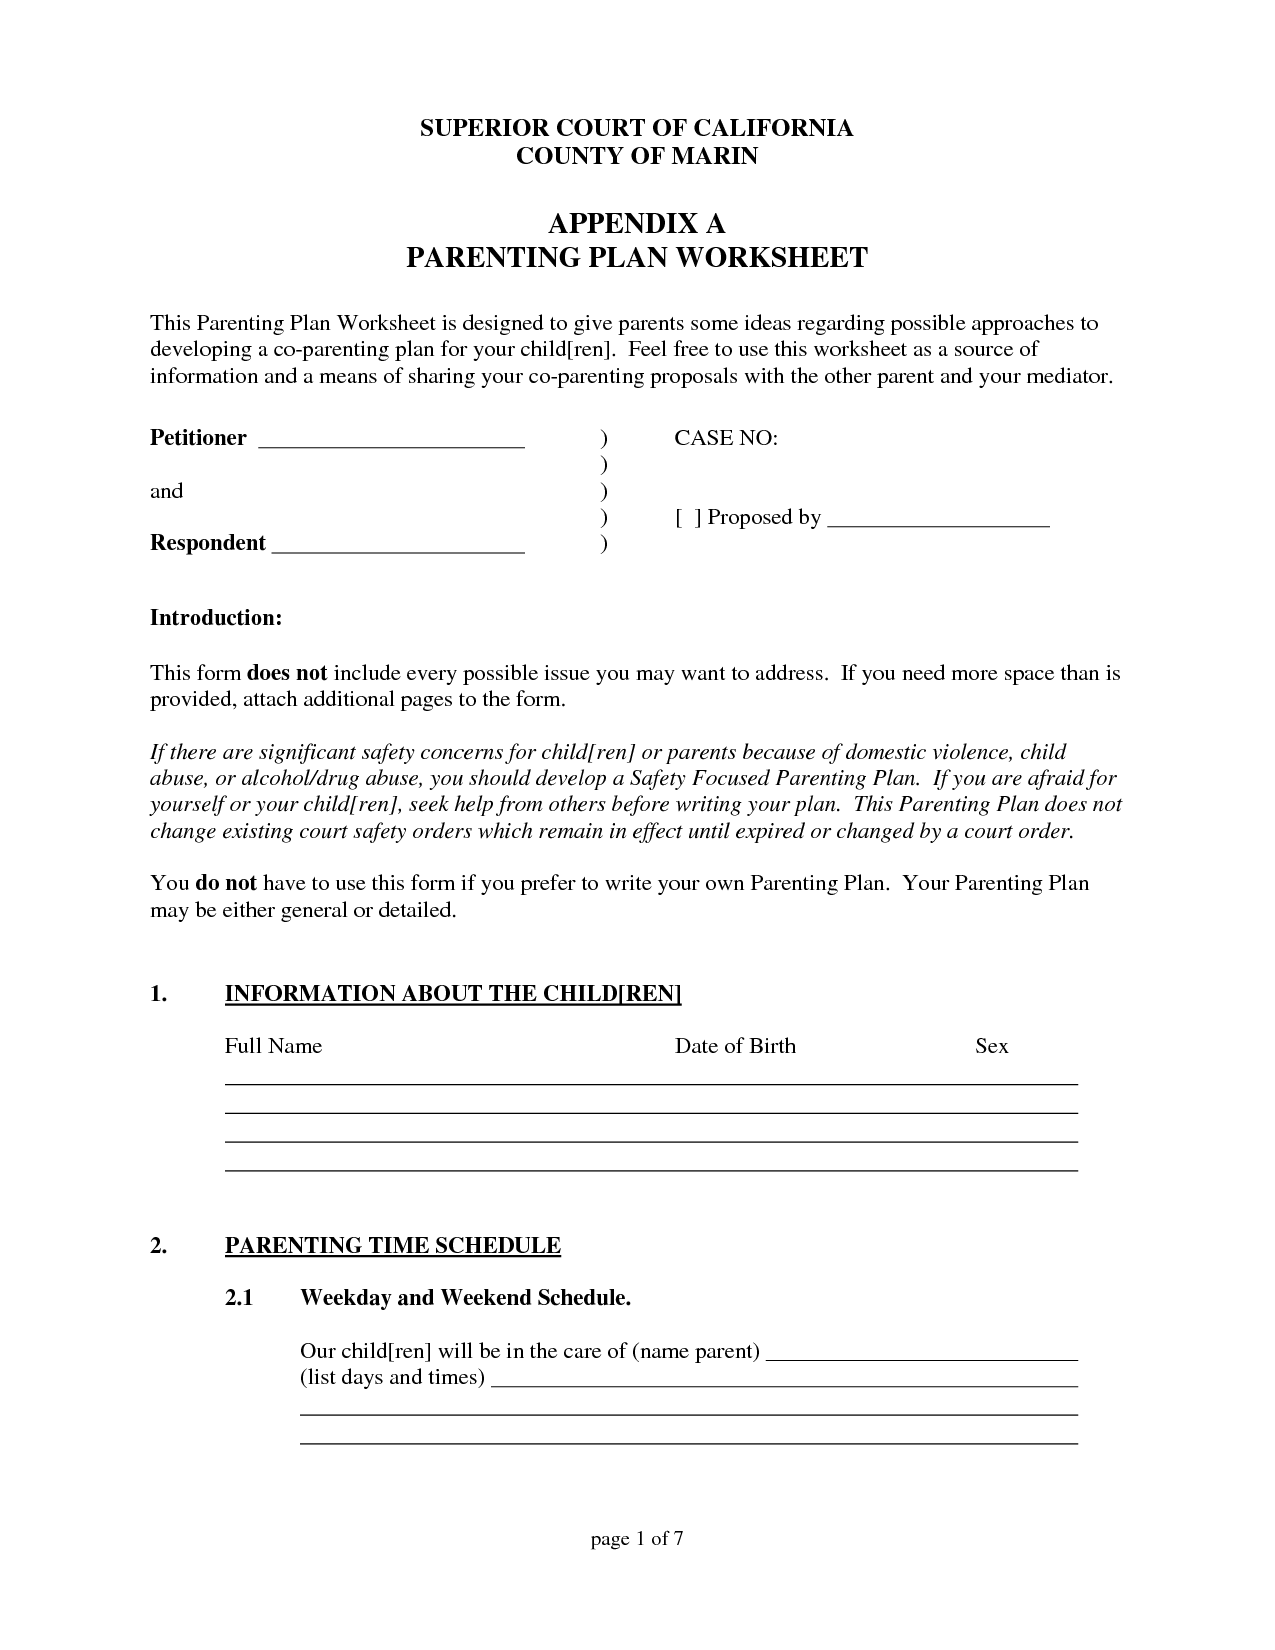 16 Best Images Of Parenting Plan Worksheet